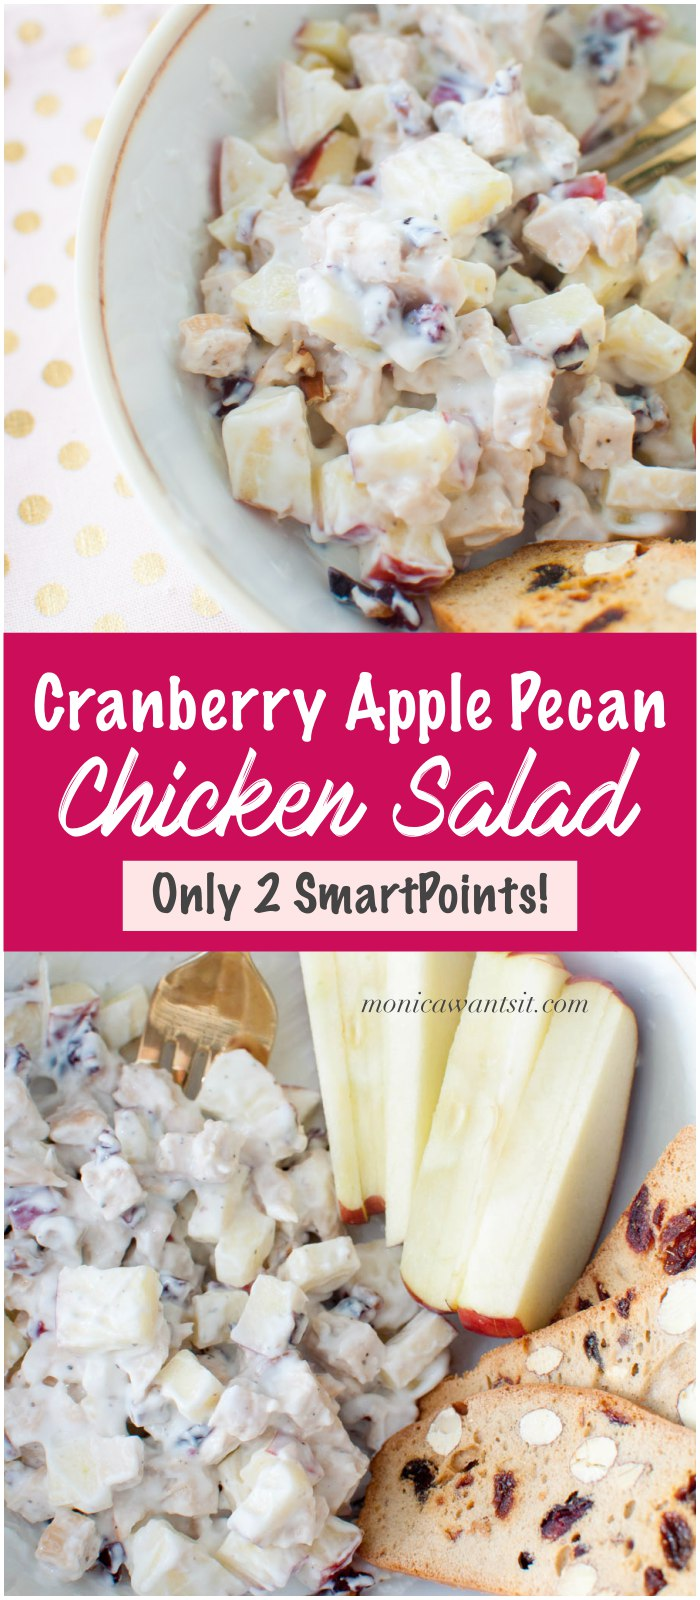 A Weight Watchers lunch or snack recipe for a tasty cranberry apple pecan chicken salad. Great on sandwiches, crackers or over leafy greens,